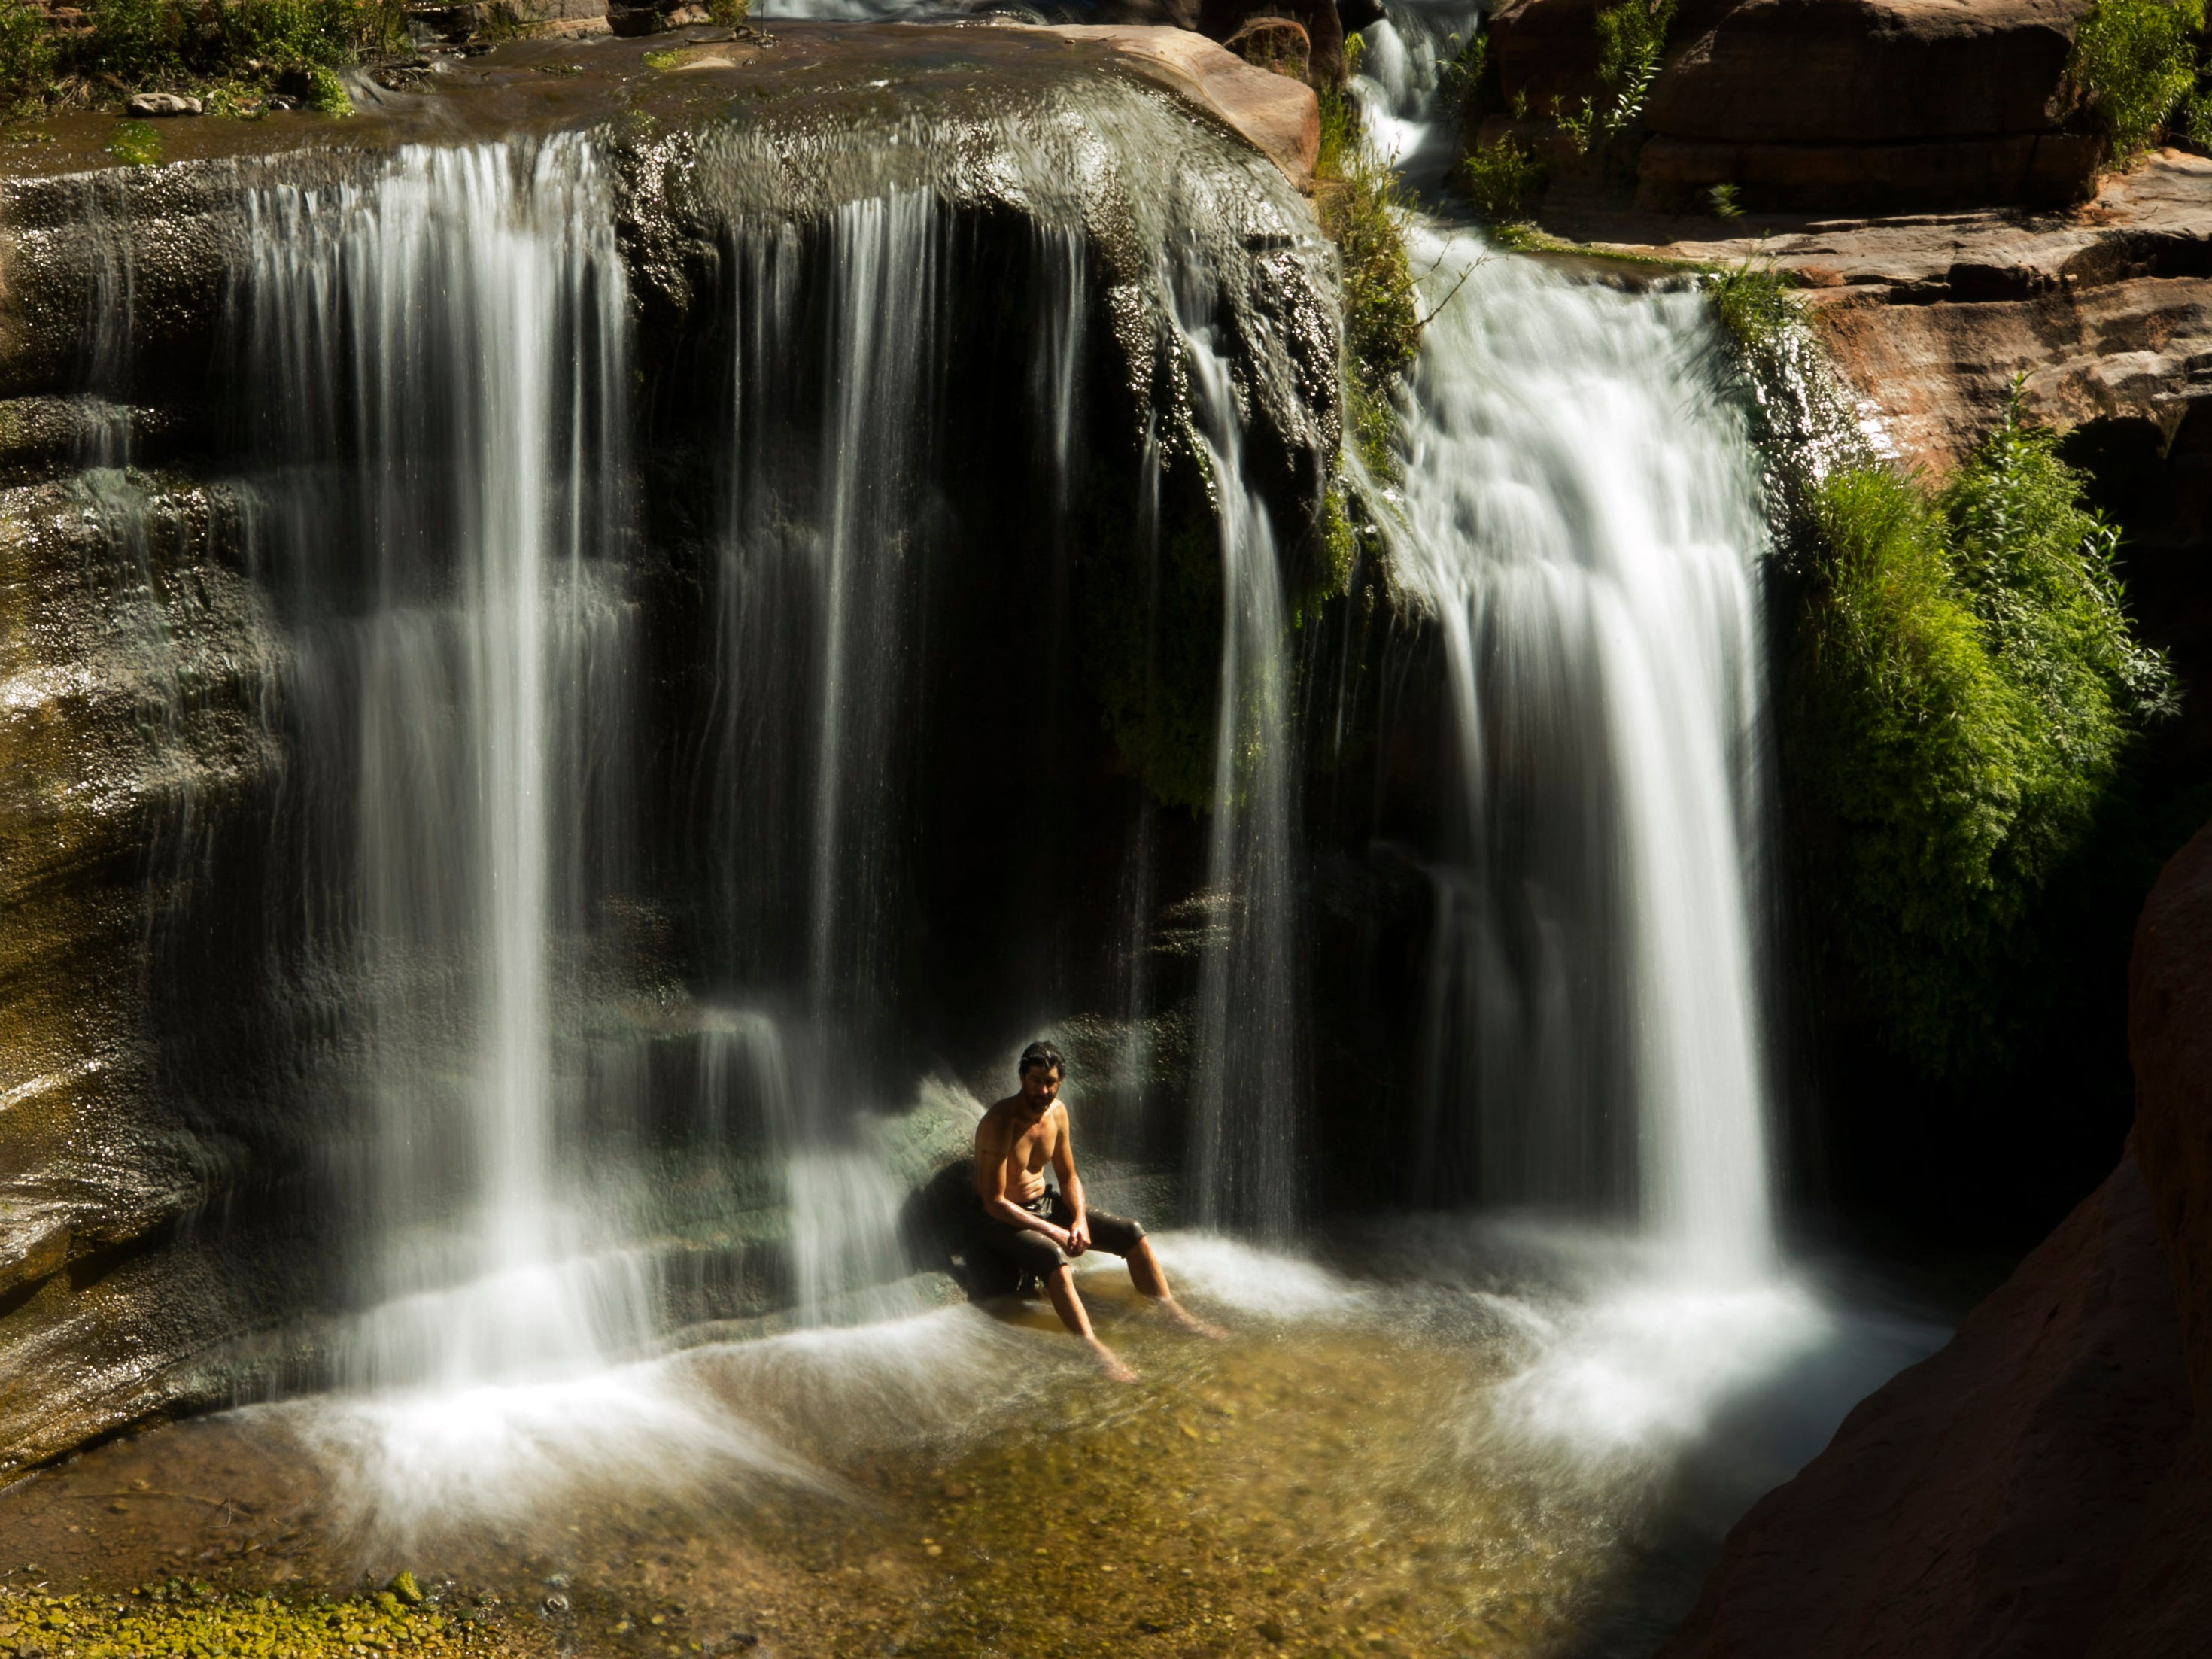 Ezra Jones sits at the base of a waterfall on May 26, 2018, atop the Tapeats sandstone narrows of Deer Creek not far from the confluence with the Colorado River in Grand Canyon National Park. Hundreds of side canyon drainages meet the Colorado River in Grand Canyon and offer a glimpse into something not impacted by Glen Canyon Dam.